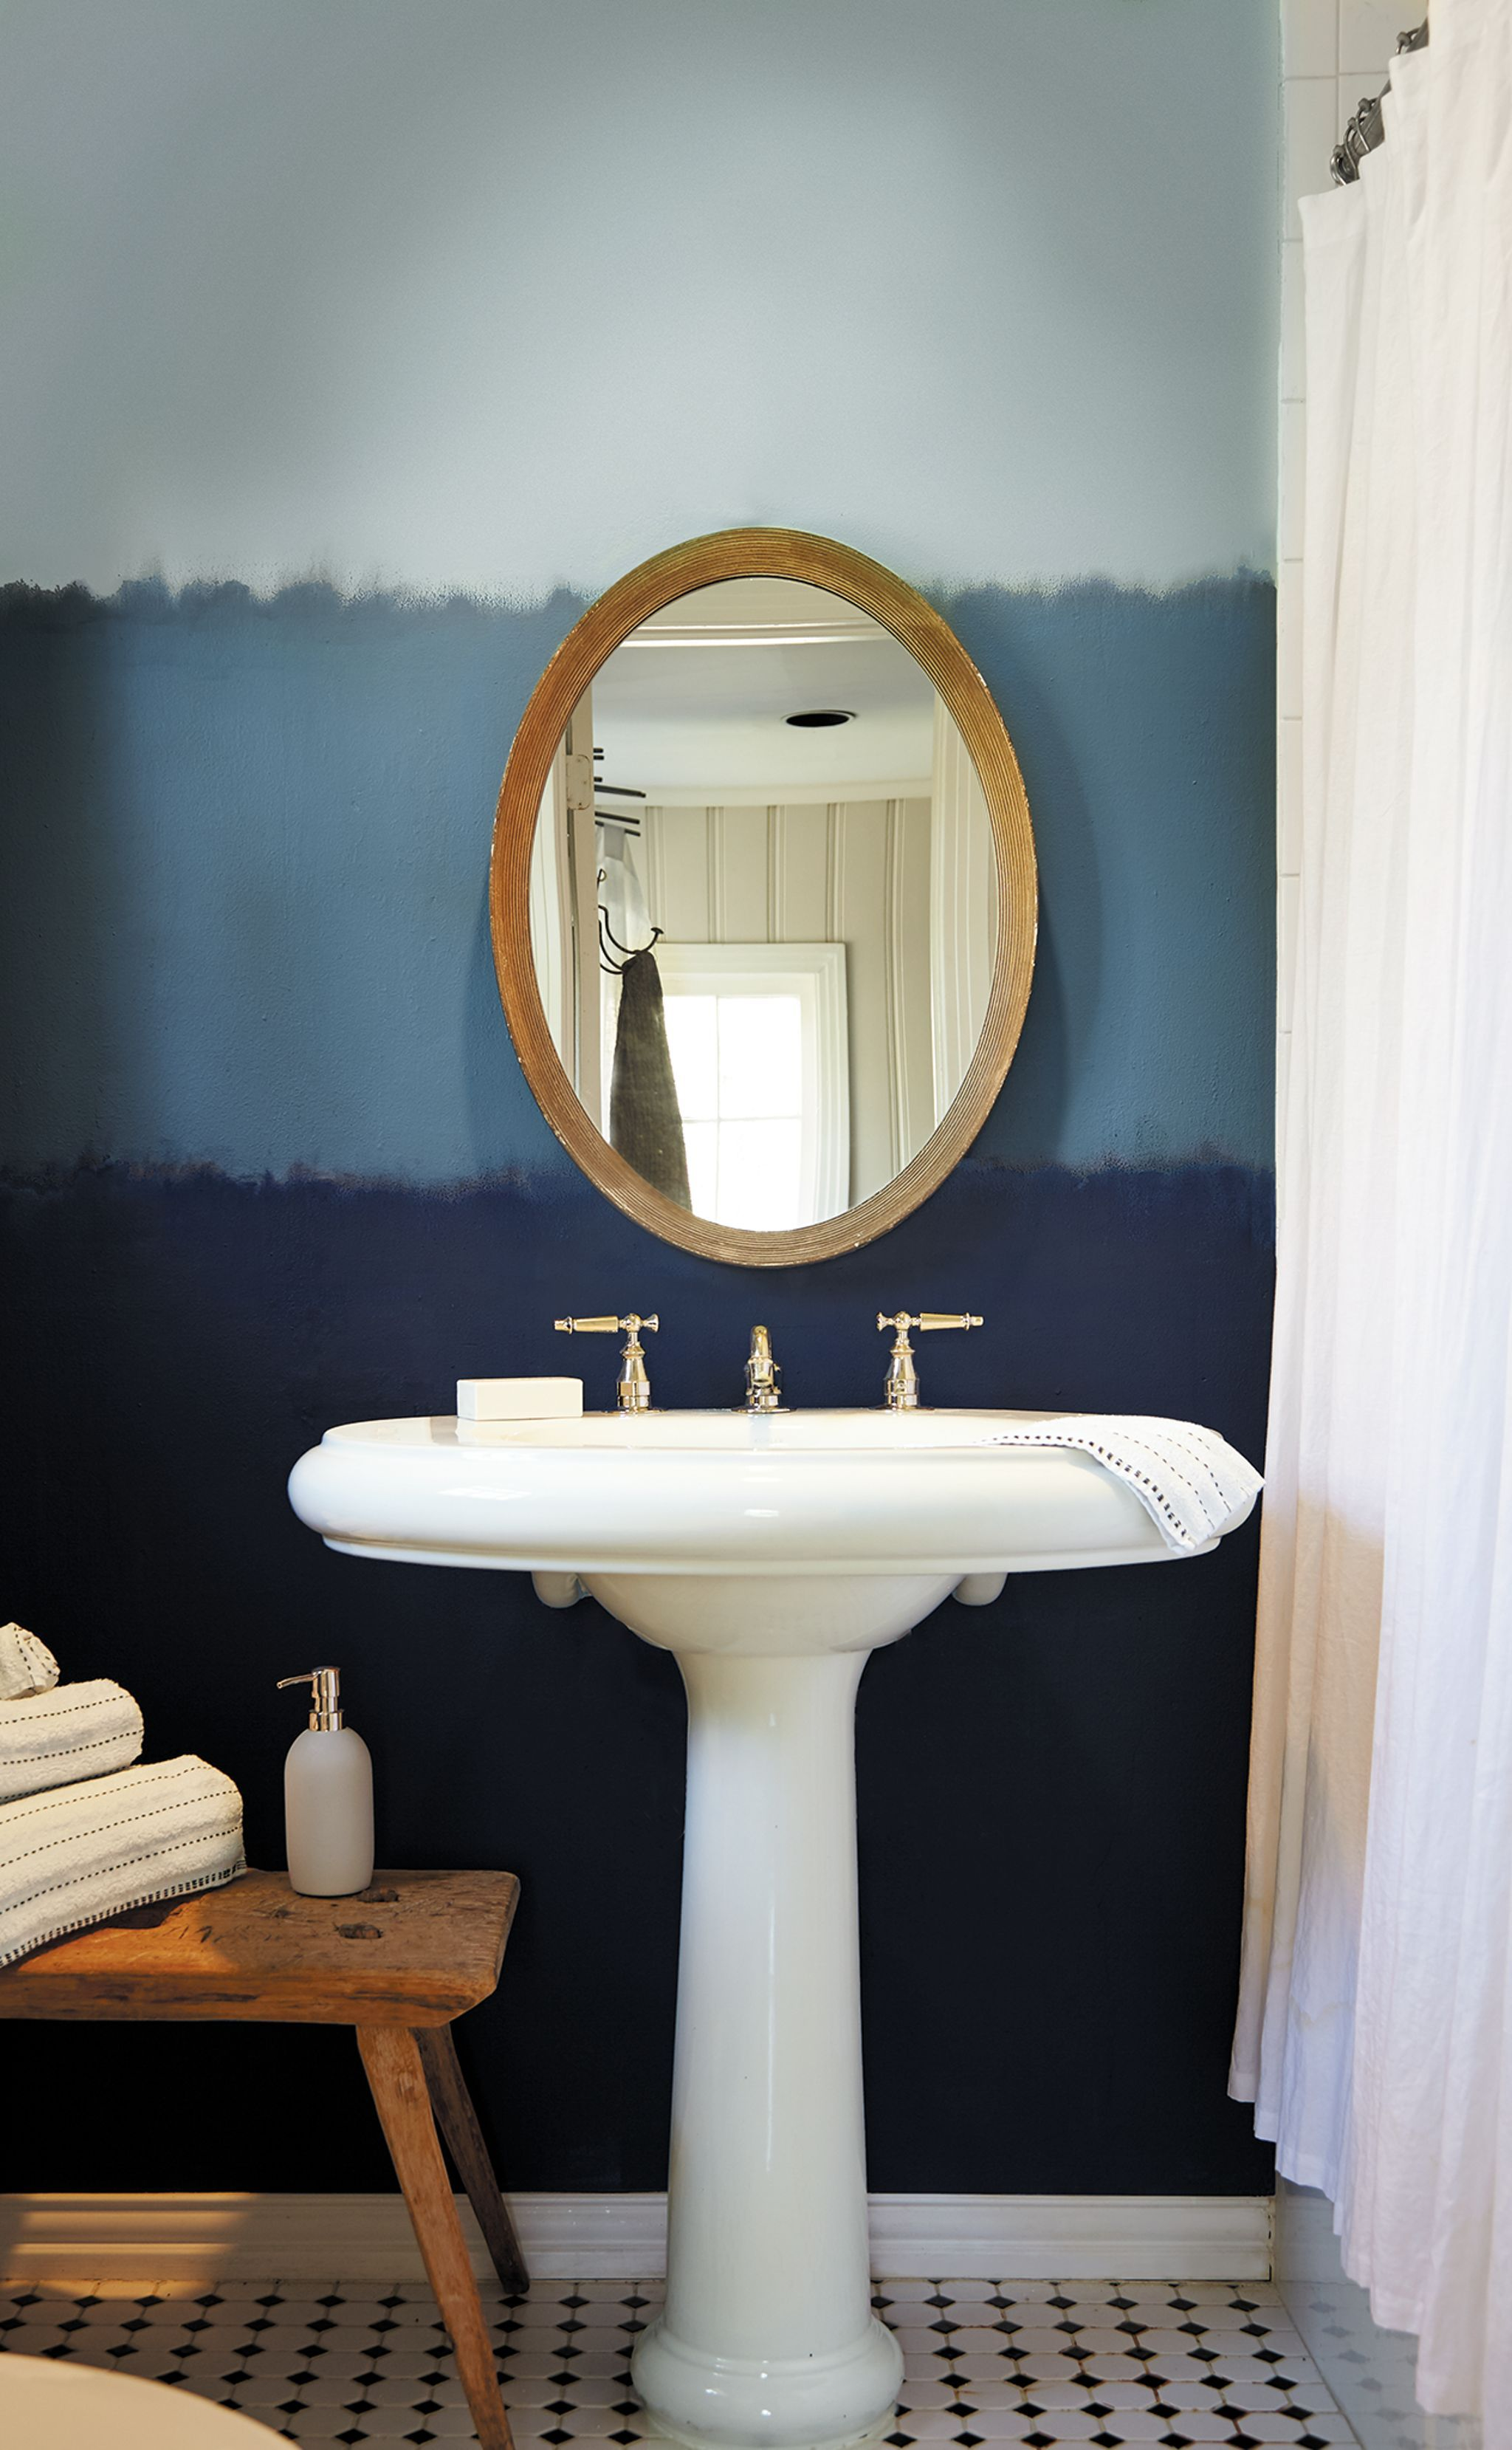 Behr Paint S 2019 Color Of The Year Is Blueprint And It S